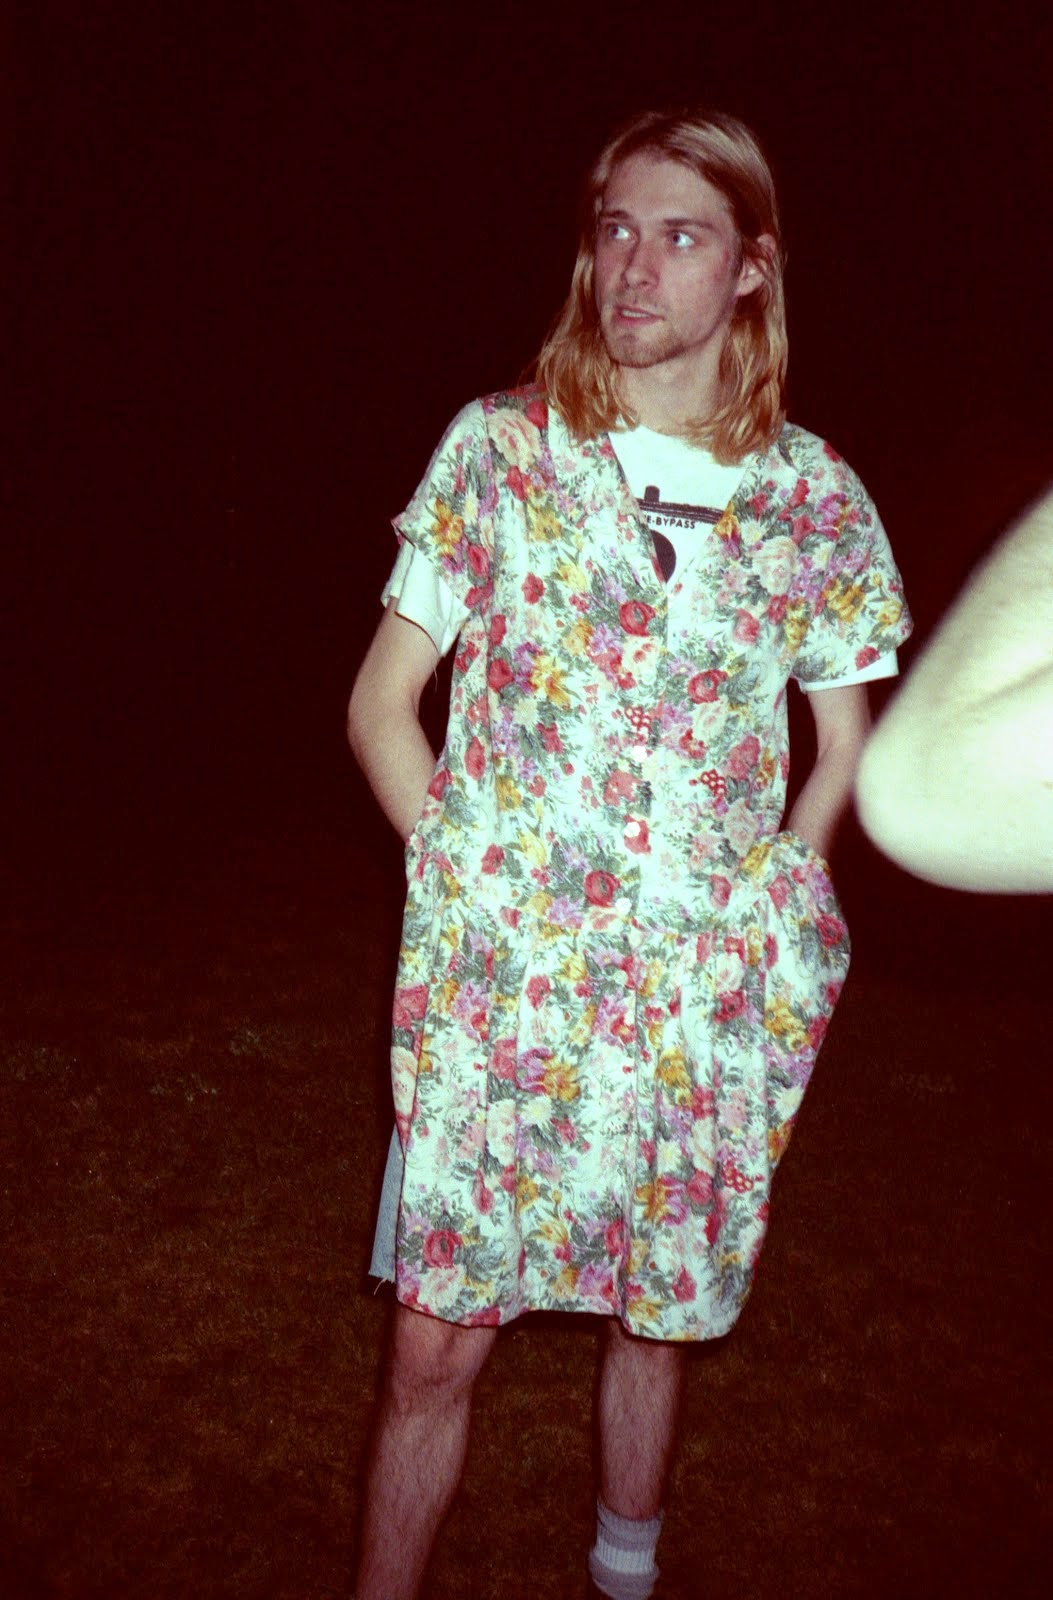 Kurt in a dress